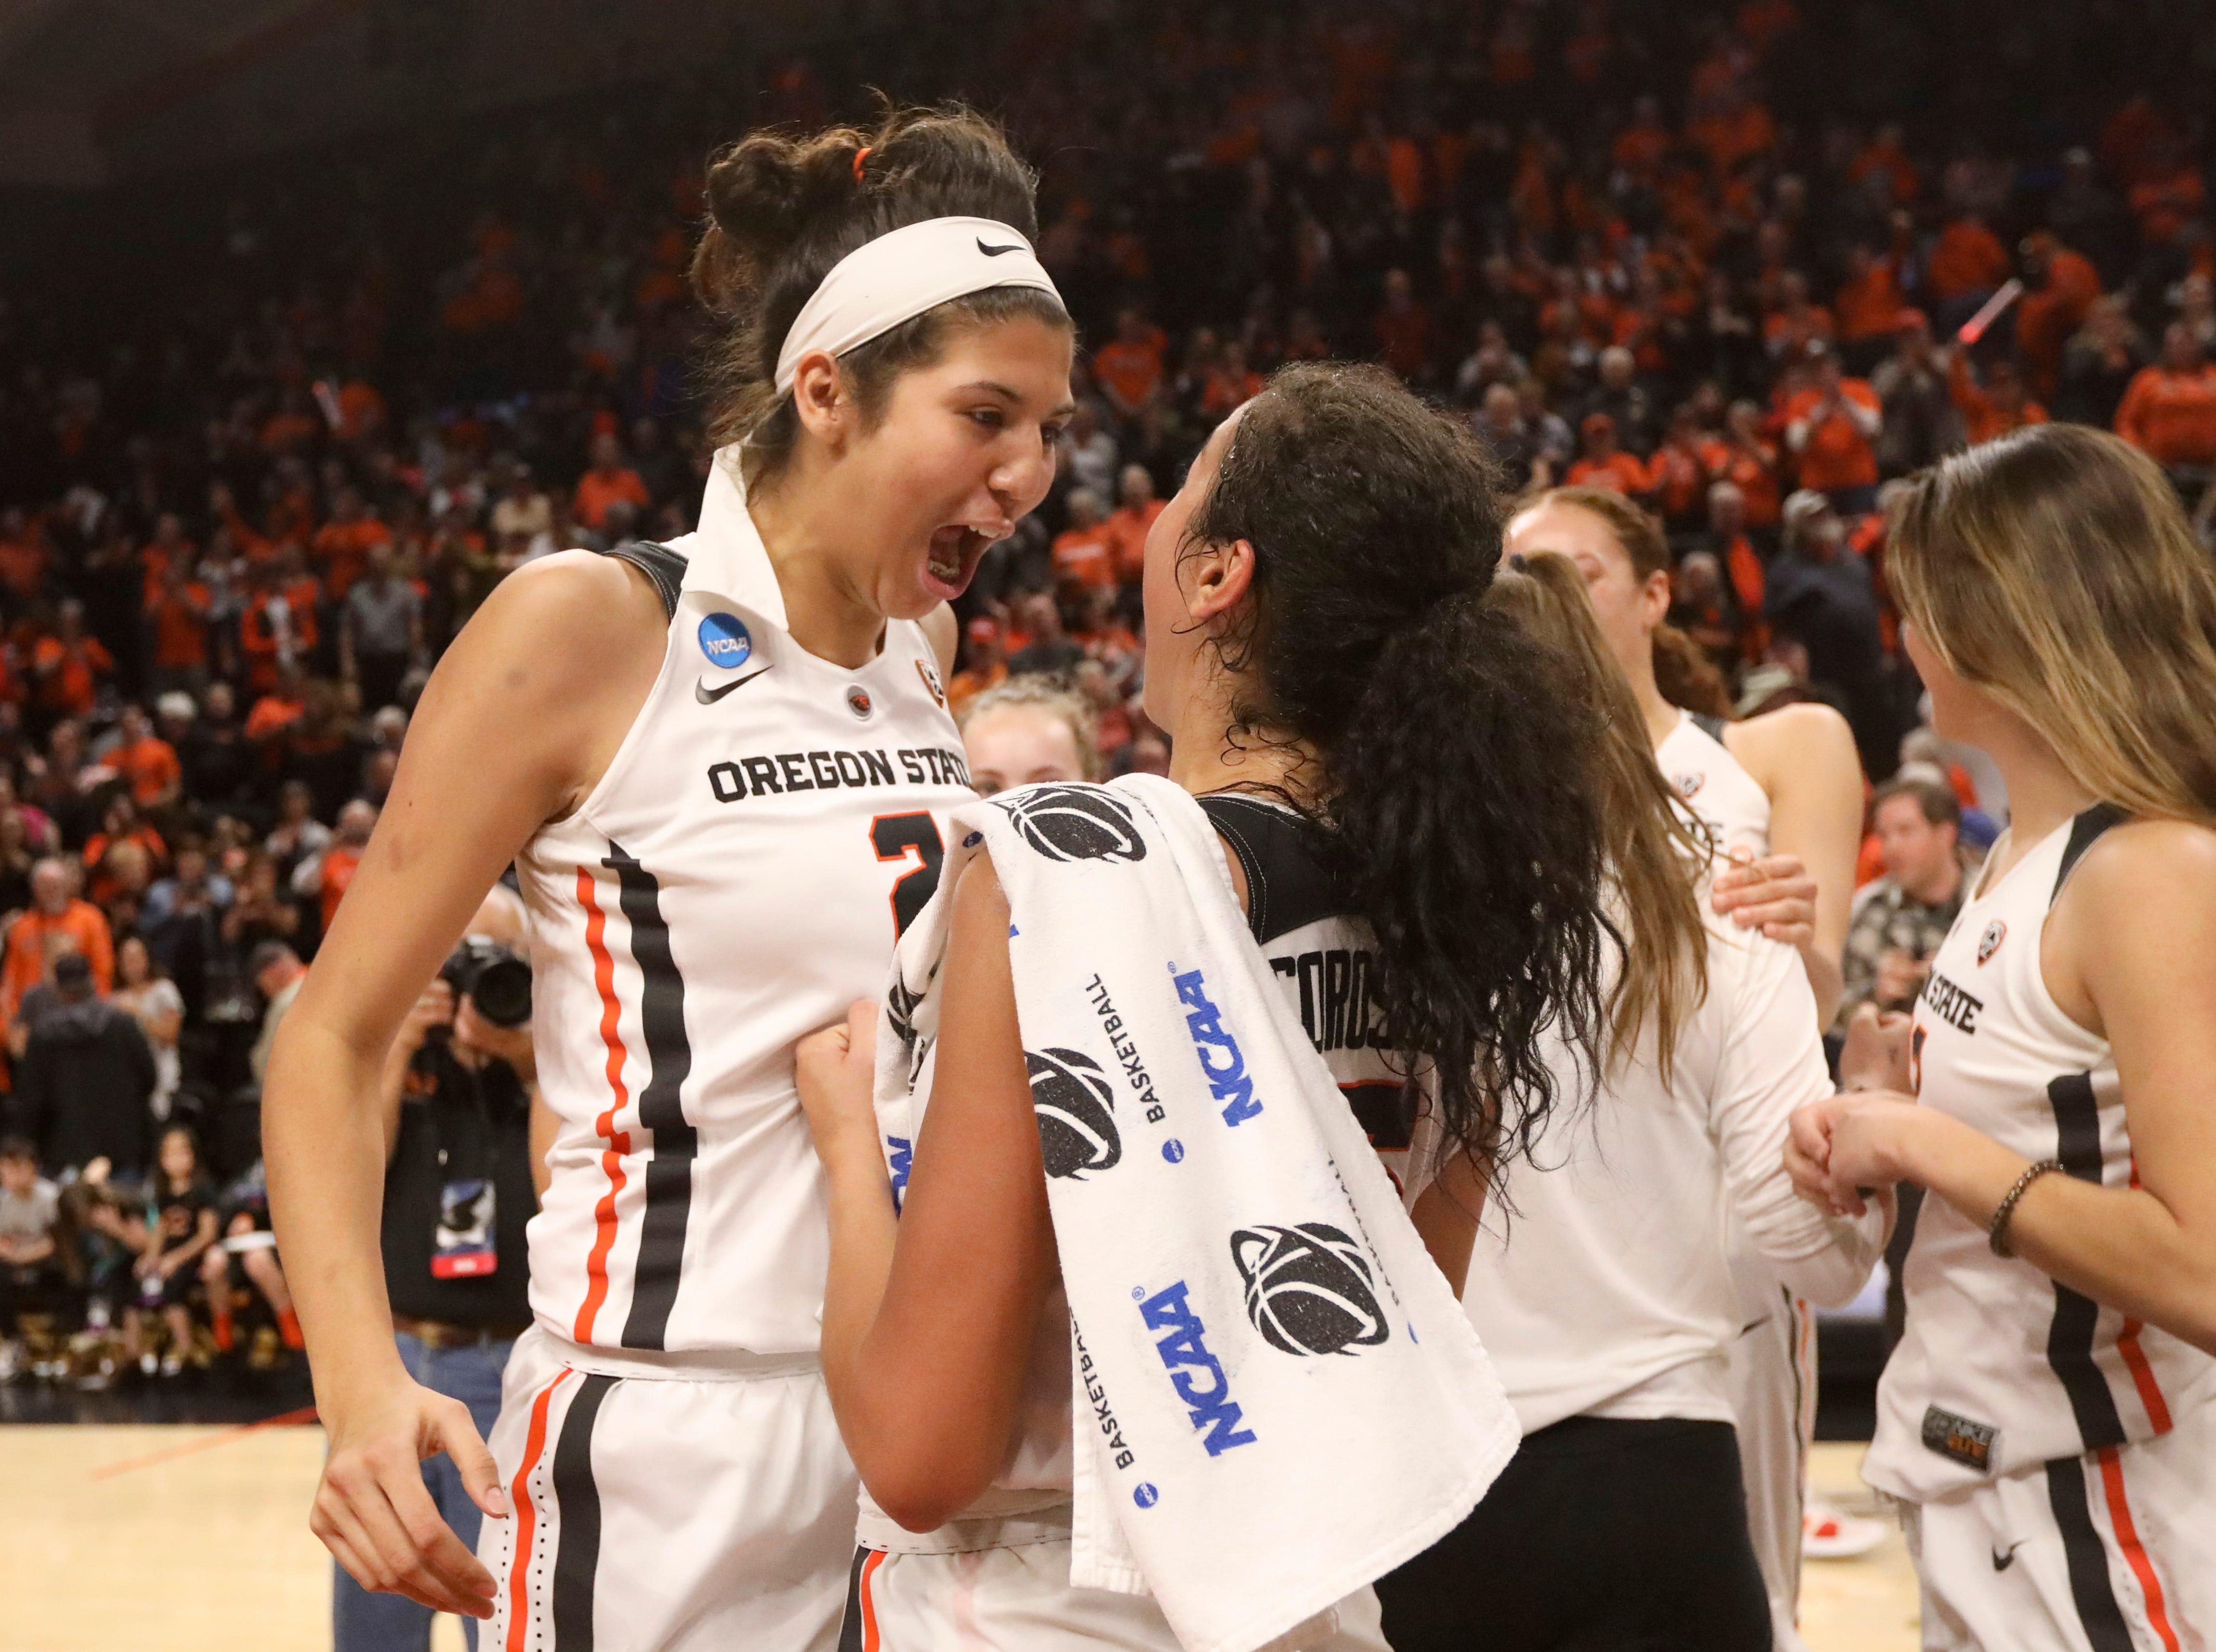 Oregon State's Andrea Aquino (2) and Taya Corosdale celebrate the team's 76-70 victory over Gonzaga in a second-round game of the NCAA women's college basketball tournament in Corvallis, Ore., Monday, March 25, 2019. (AP Photo/Amanda Loman)